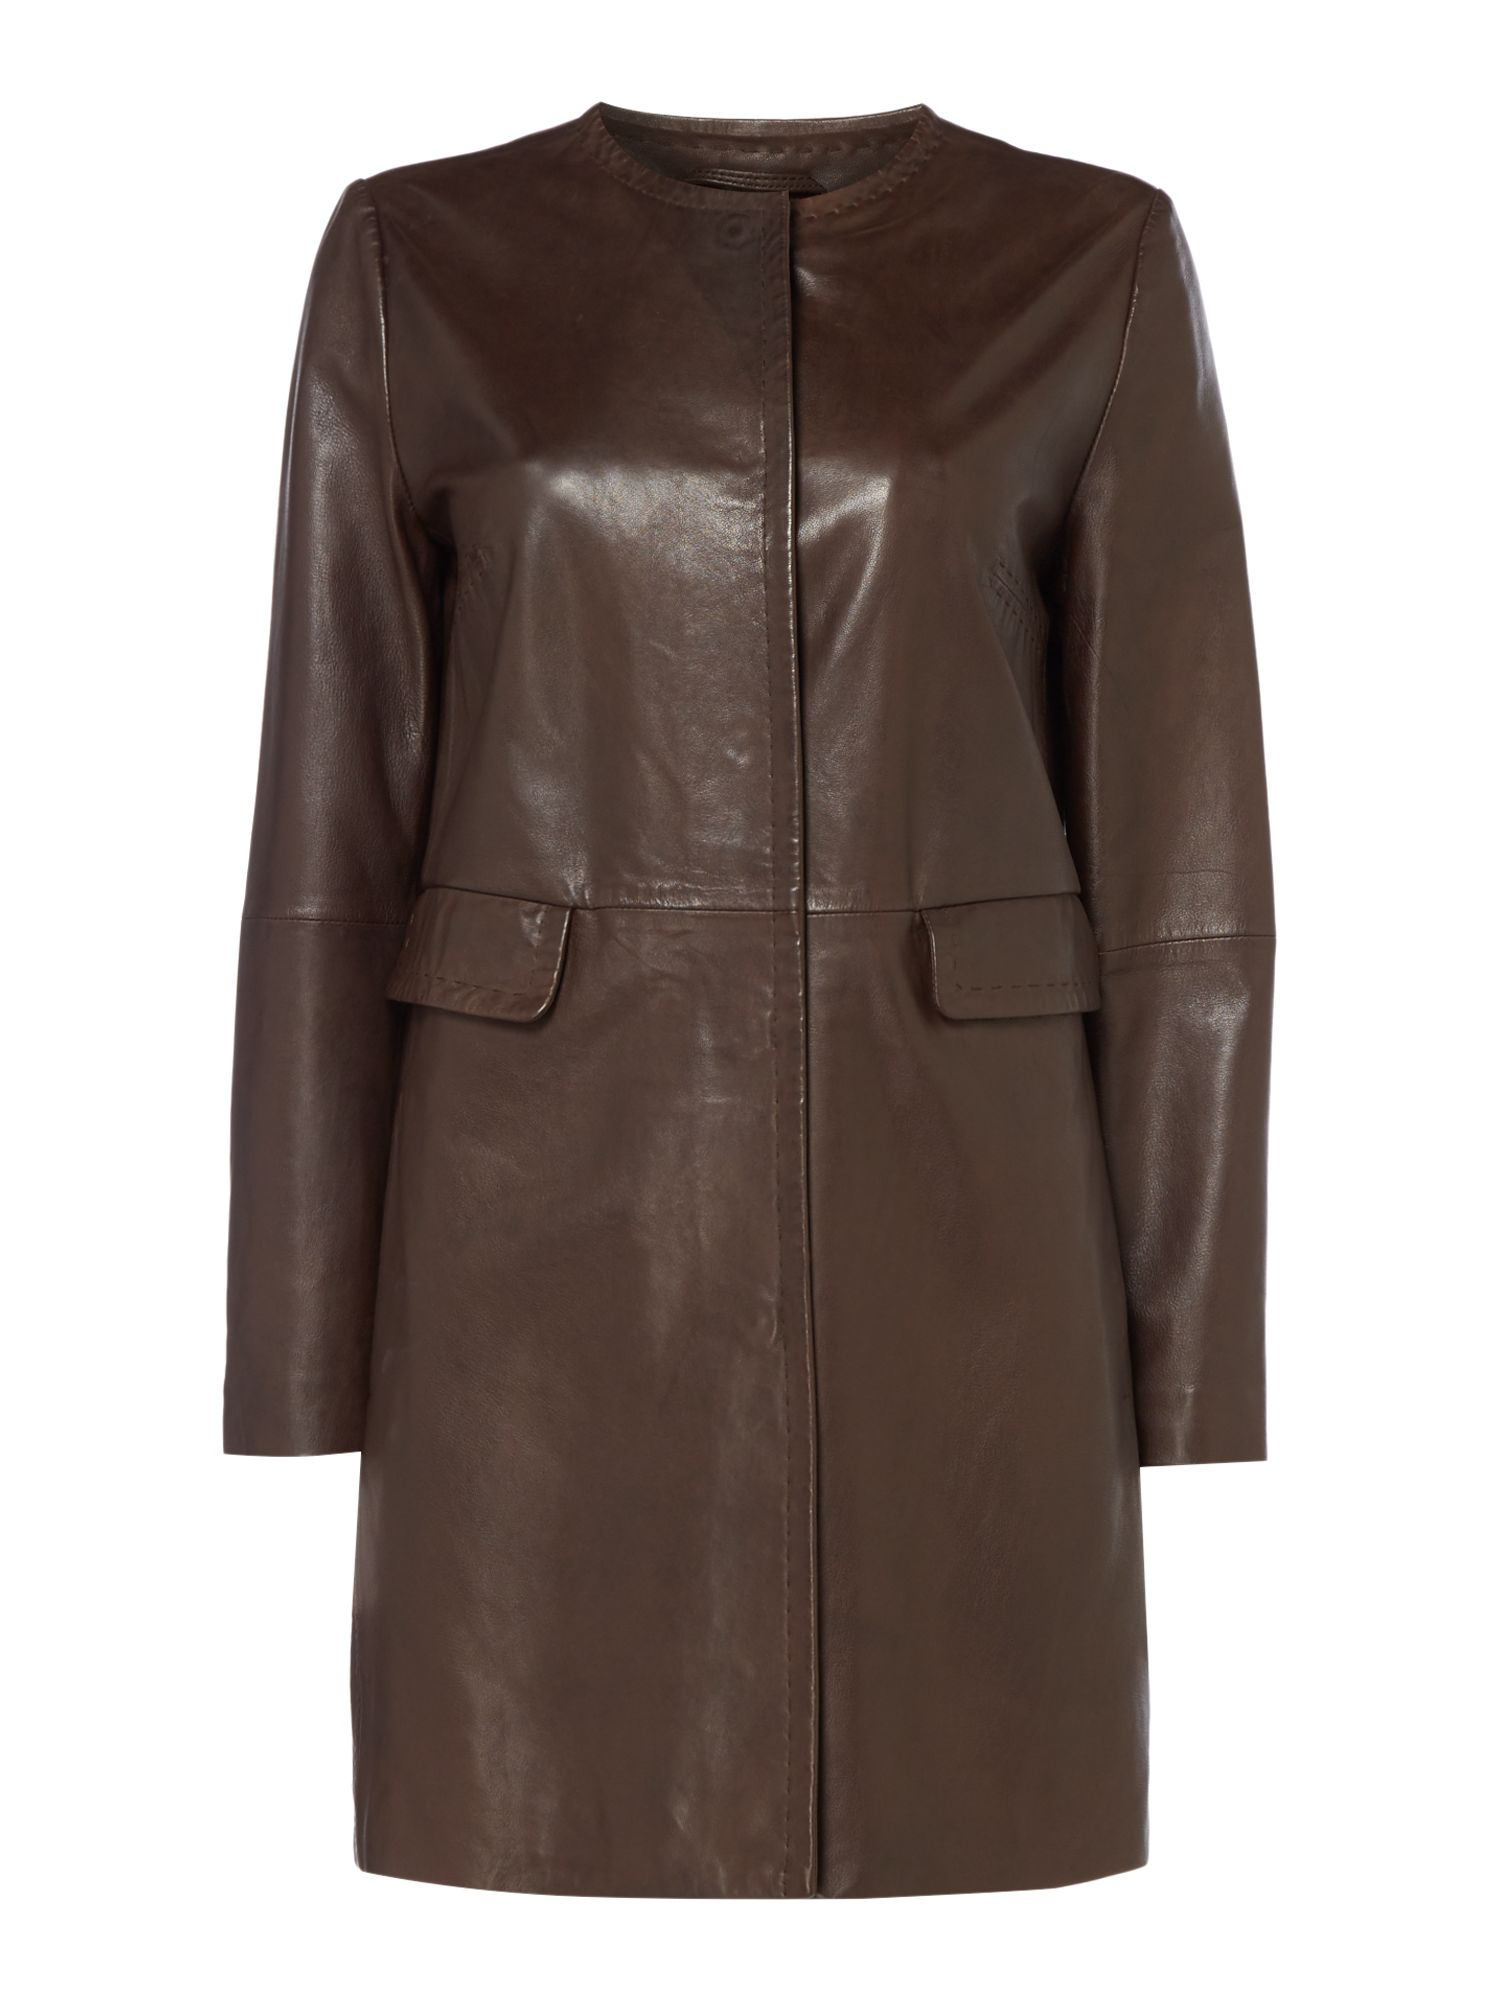 Max Mara Weekend Maine Leather Front Pocket Jacket, Dark Brown